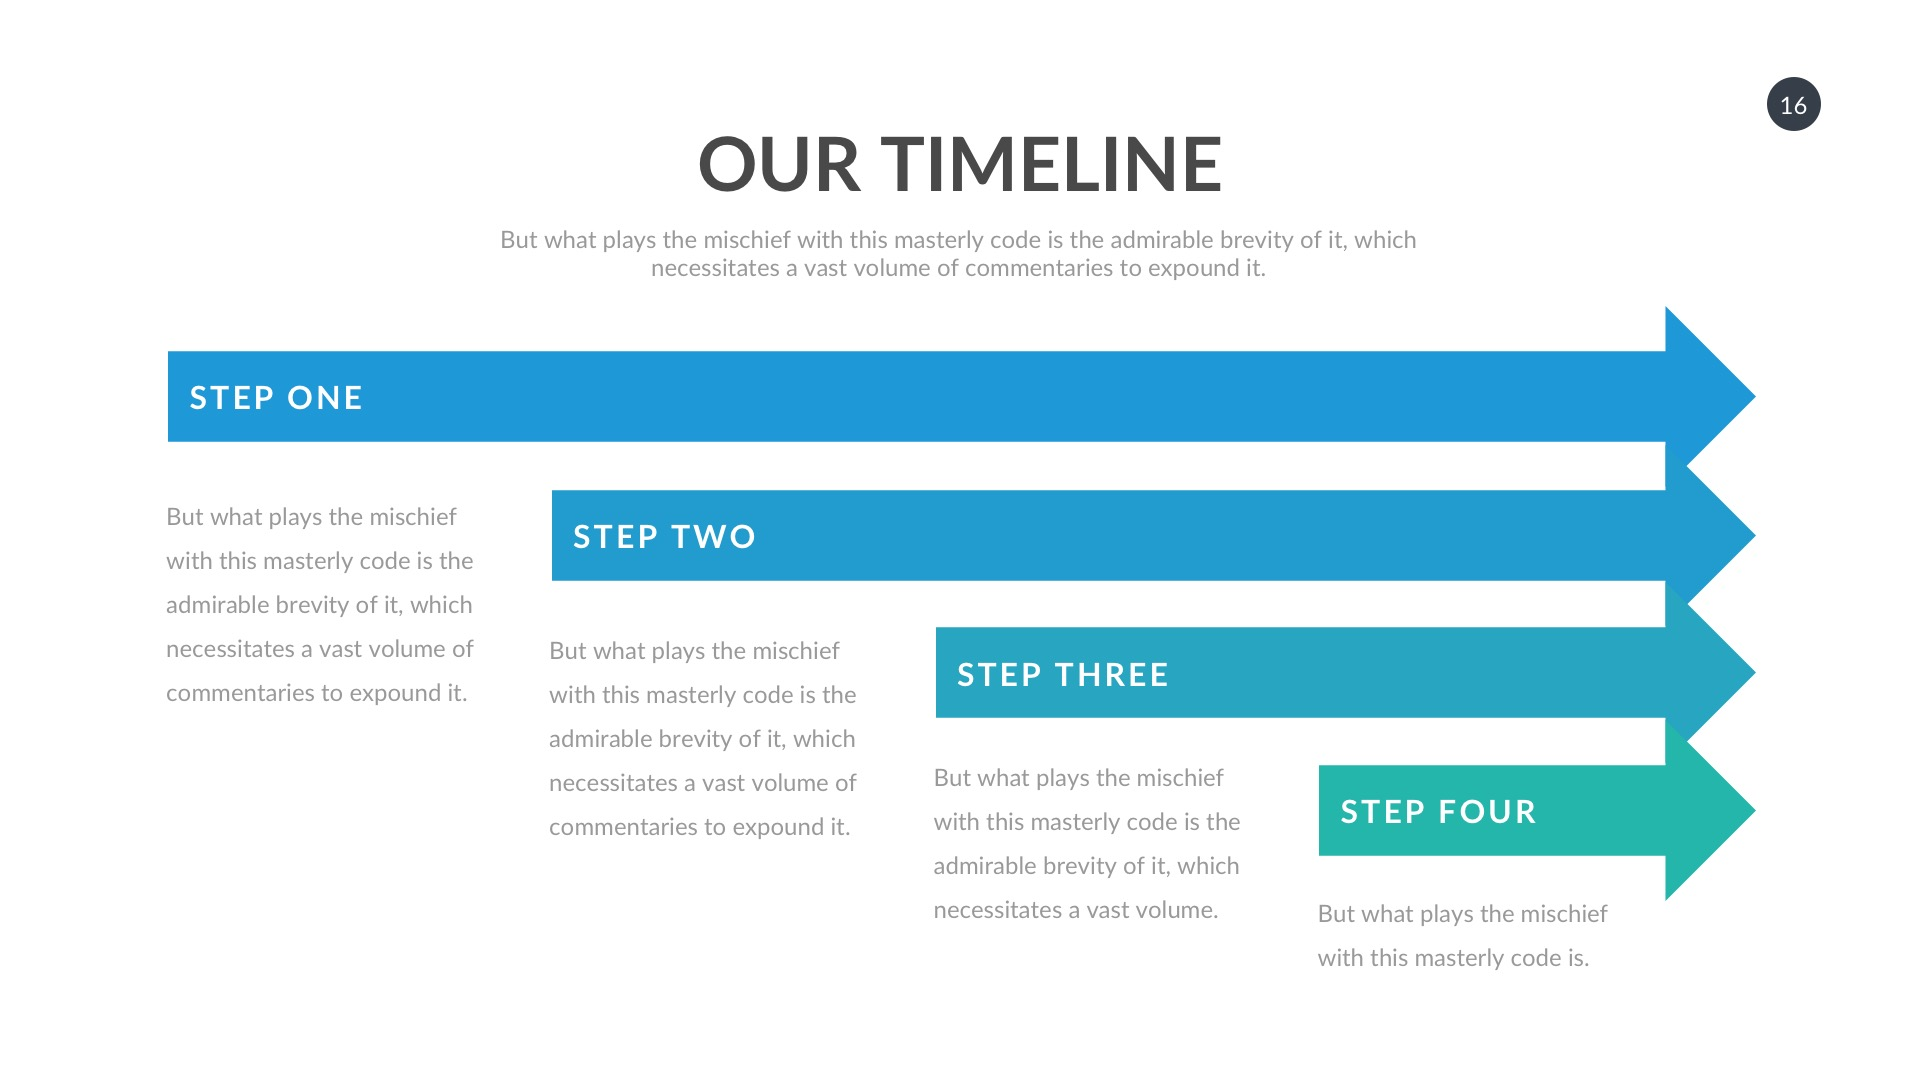 Momentum professional business powerpoint template by louistwelve design professional business powerpoint template 16g toneelgroepblik Choice Image